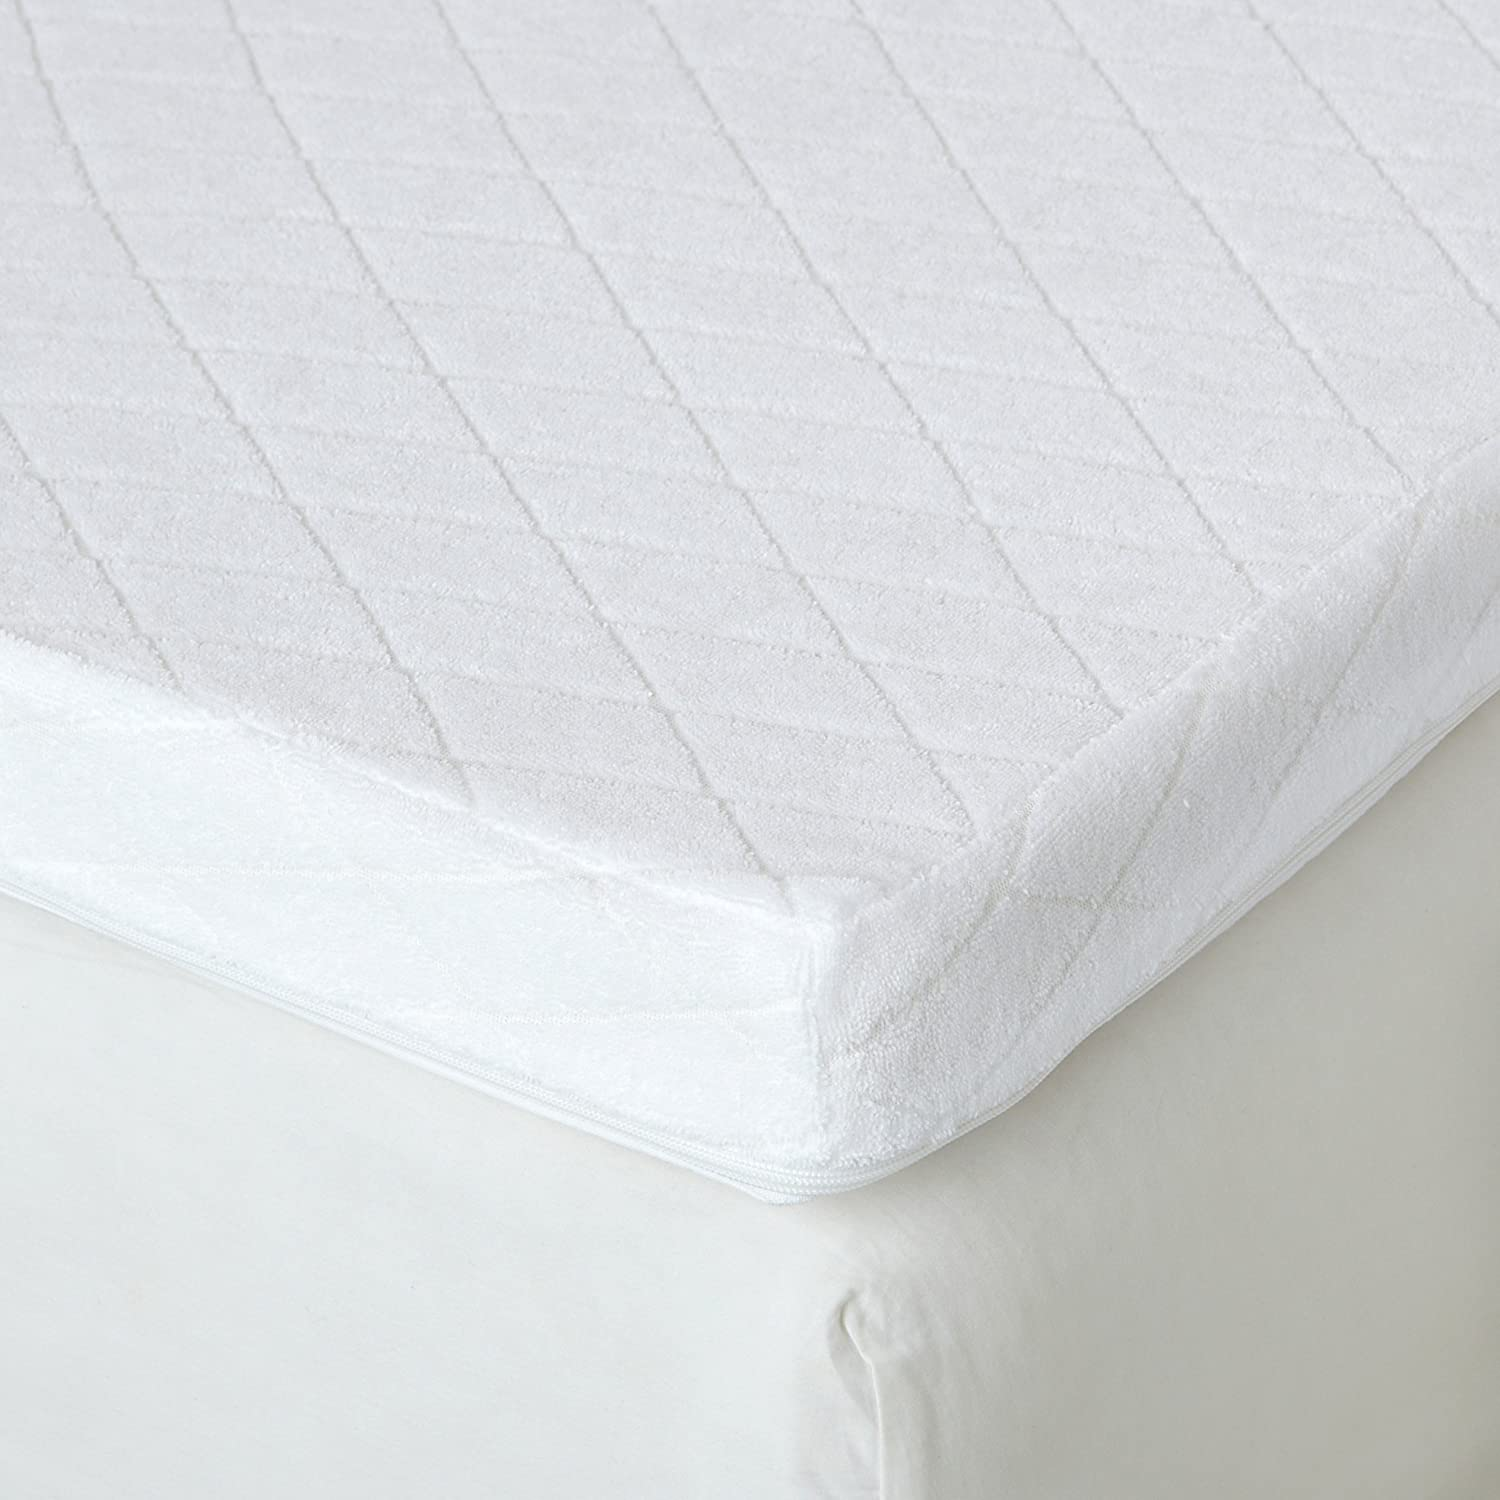 Sleep Better Ultimate Memory Foam Mattress Topper With Velour Cover Ireviewable